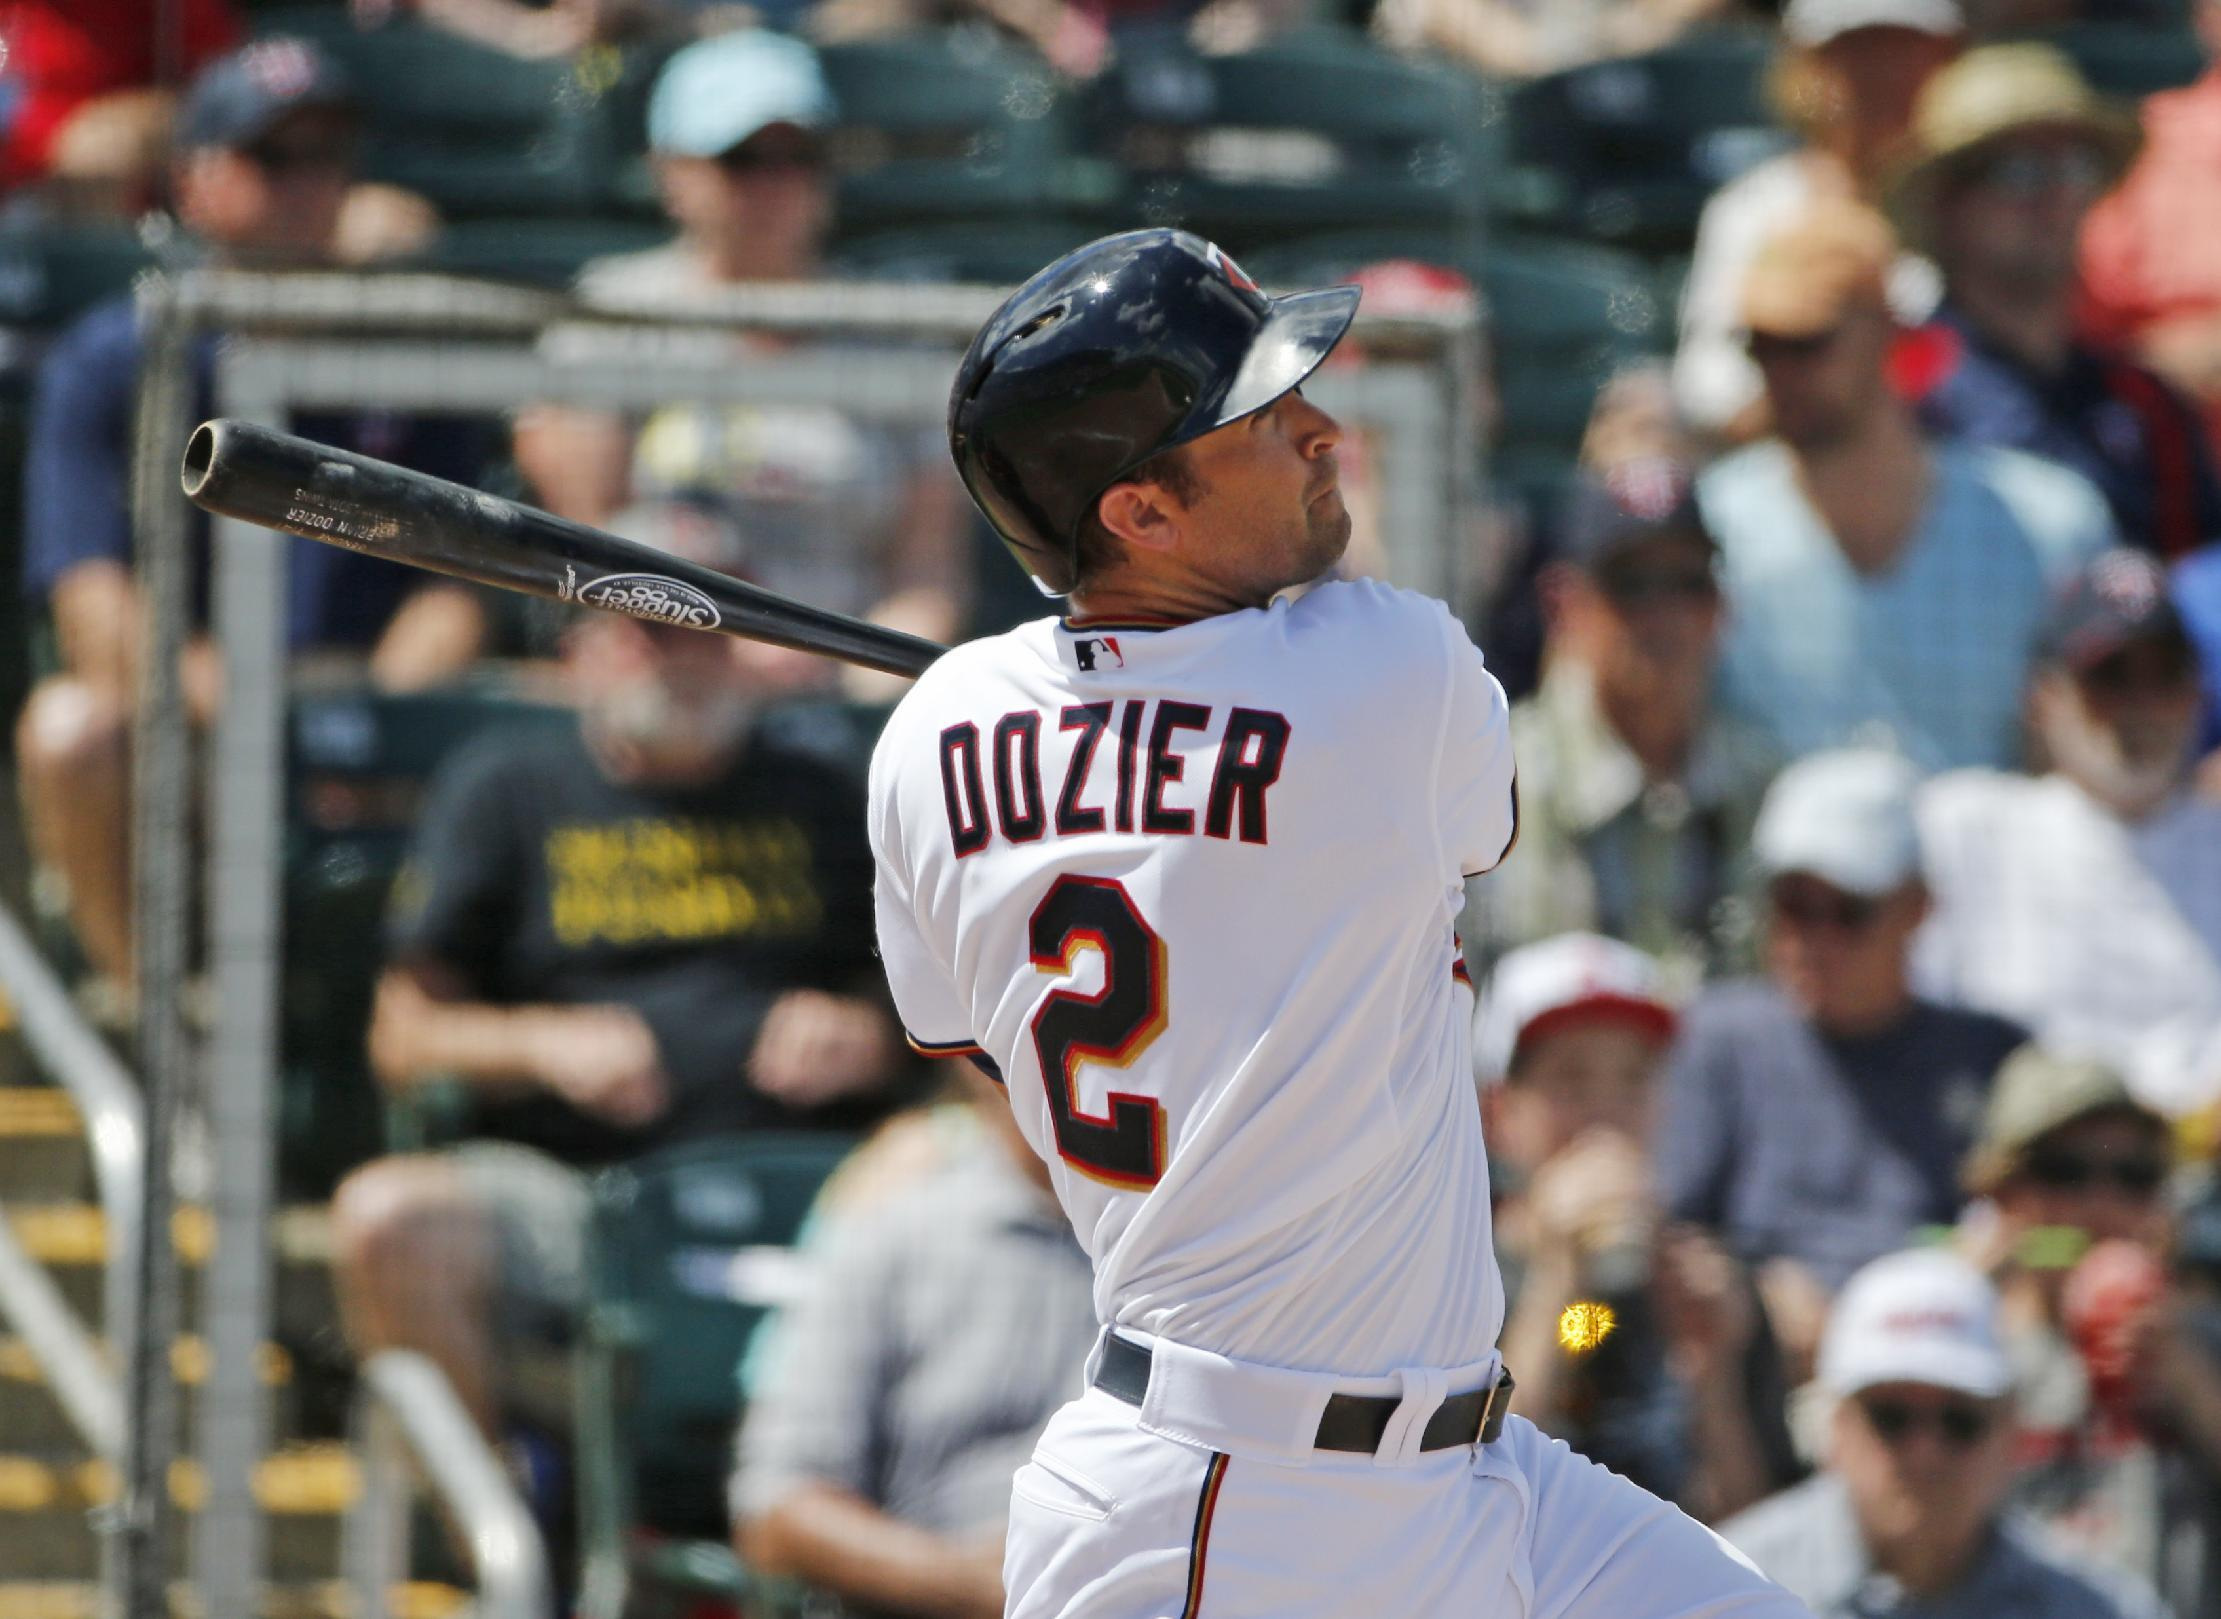 Dozier agrees to $20 million, 4-year contract with Twins